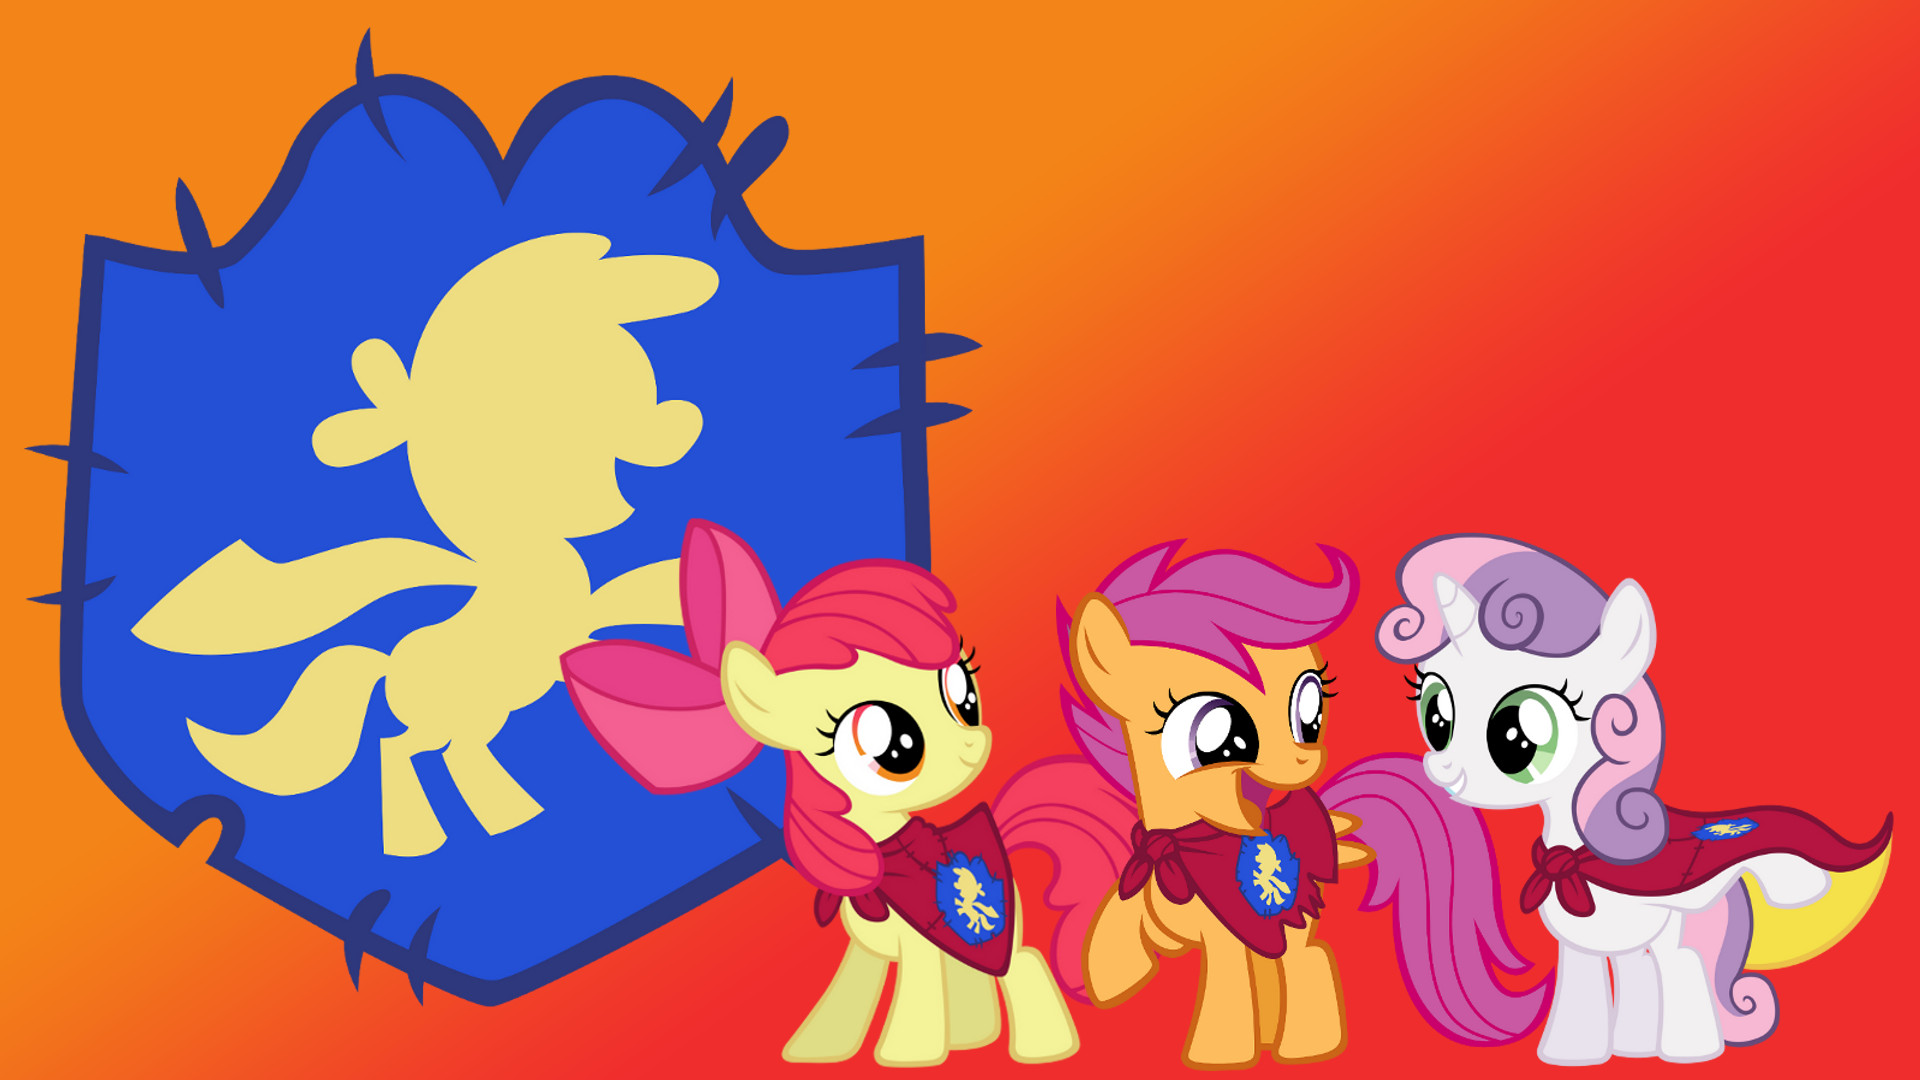 1920x1080 CMC wallpaper by neodarkwing CMC wallpaper by neodarkwing